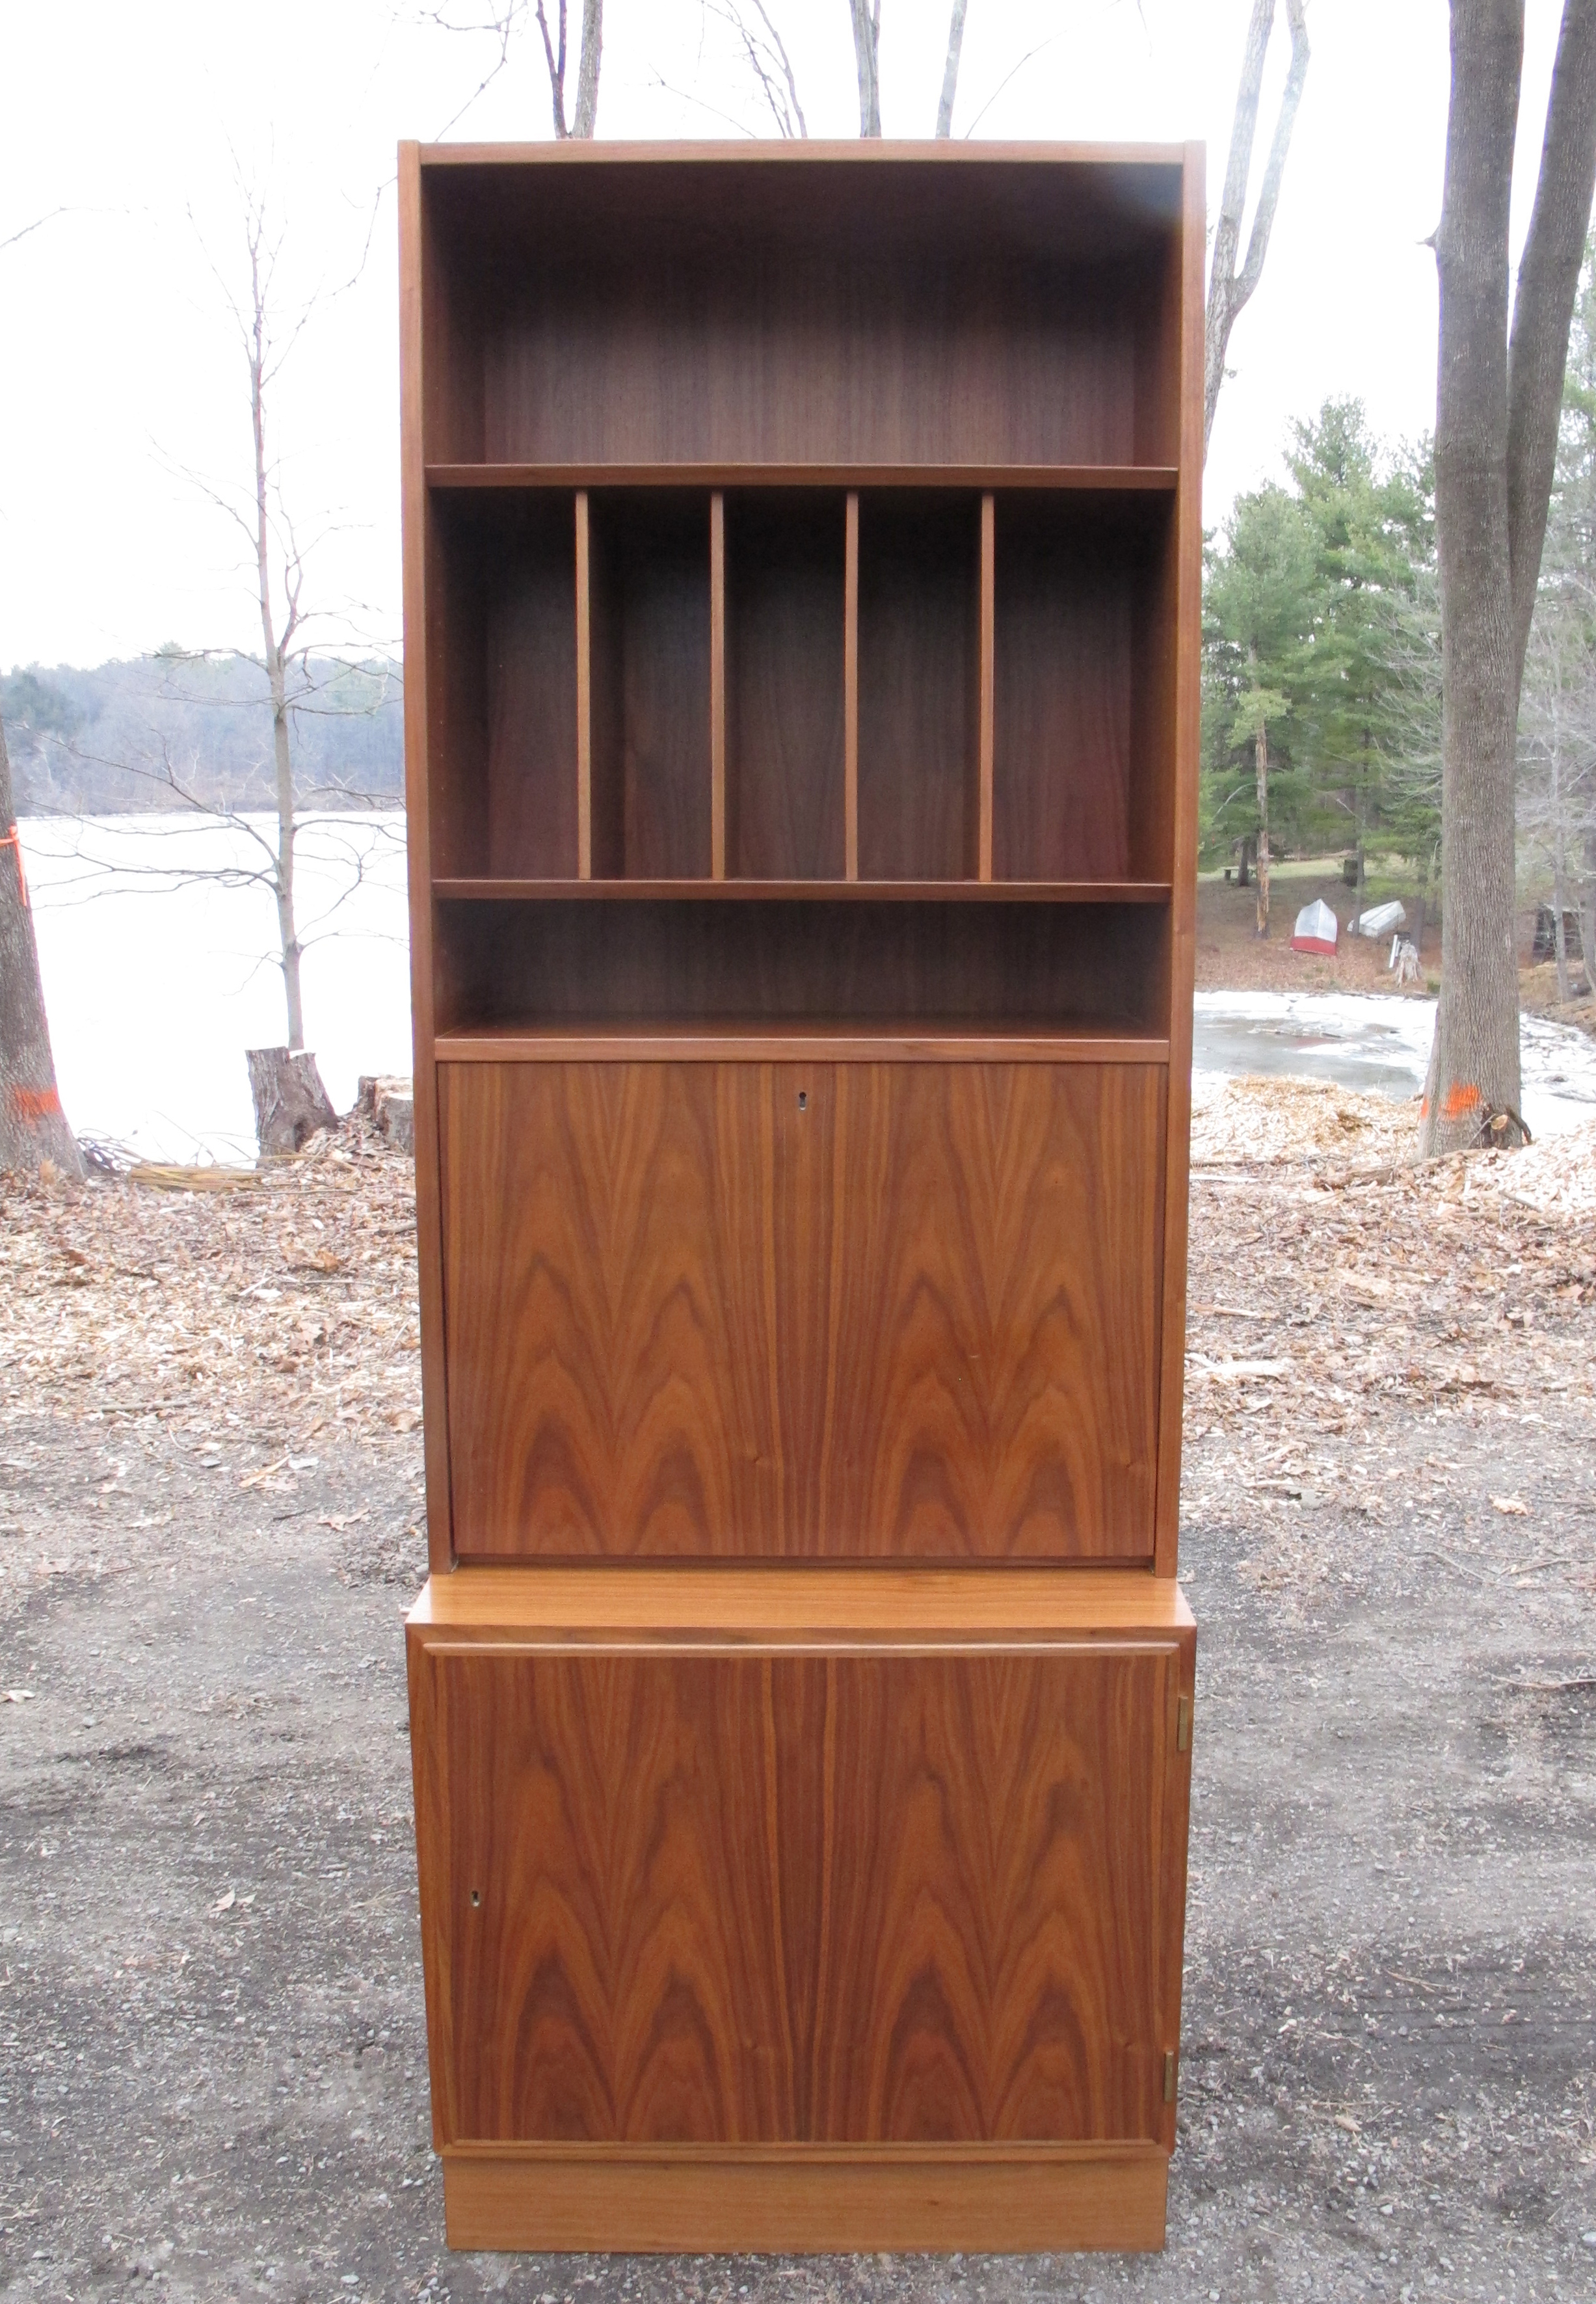 DANISH MODERN WALNUT BOOKCASE BY POUL HUNDEVAD